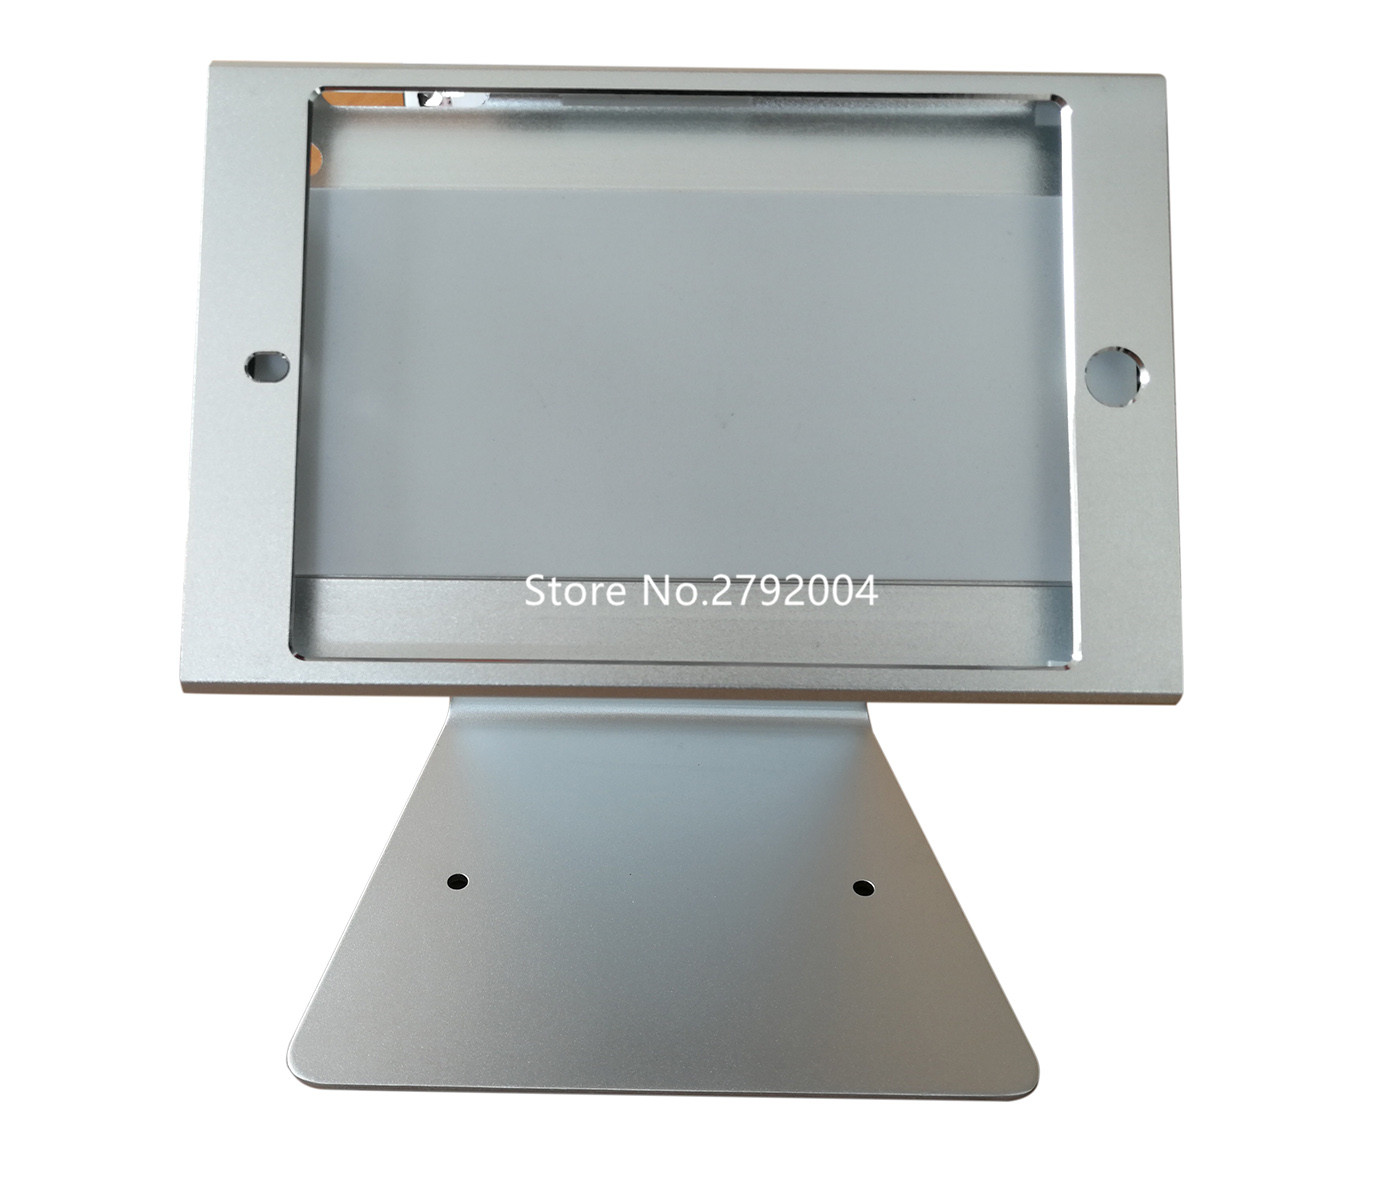 Restaurant Ordering System Locked For Ipad Mini Table Stand Tilt Up And Donw Tablet Enclosure